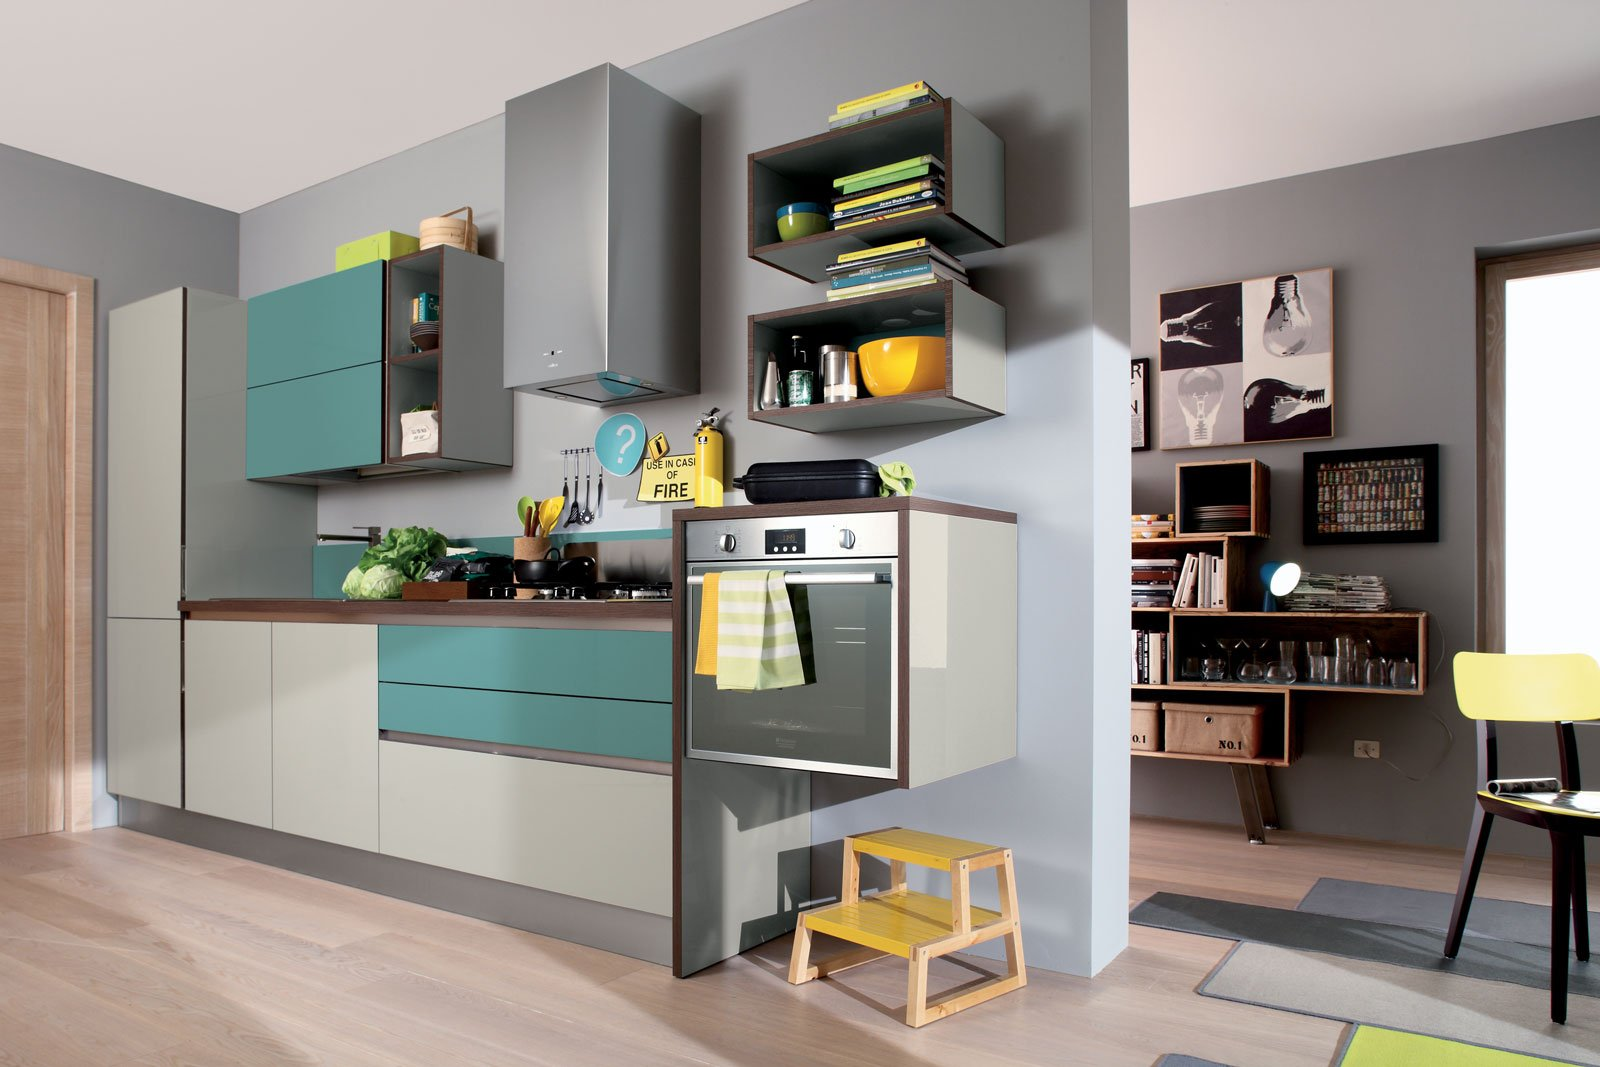 Casabook immobiliare cucine piccole composizioni for New kitchen ideas 2016